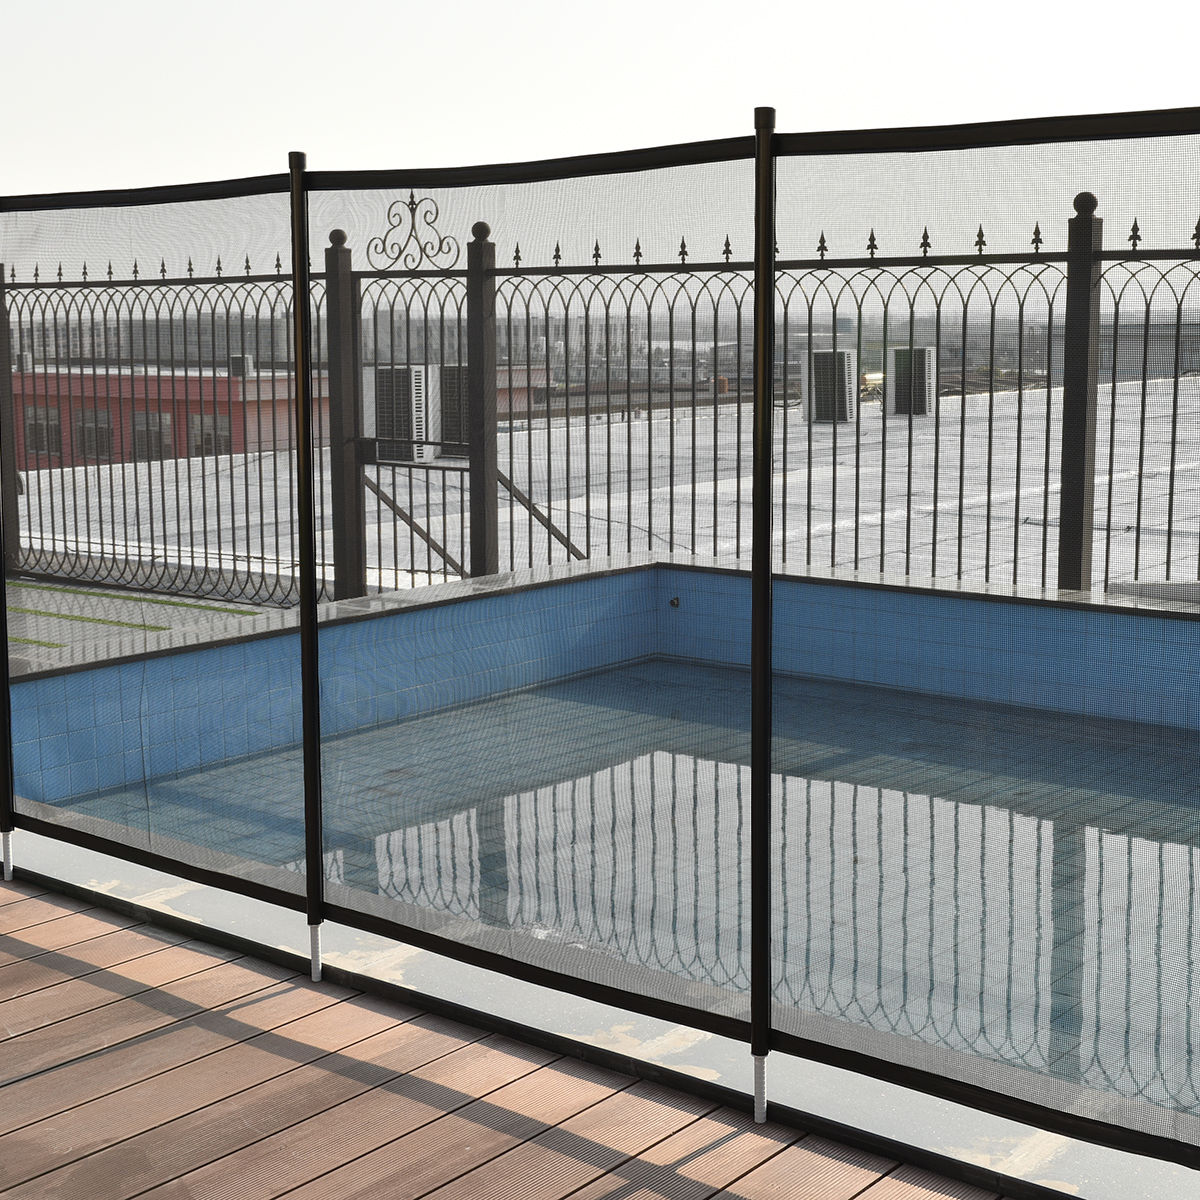 Costway 4'x12' In-Ground Swimming Pool Safety Fence Section Prevent Accidental Drowning by Costway